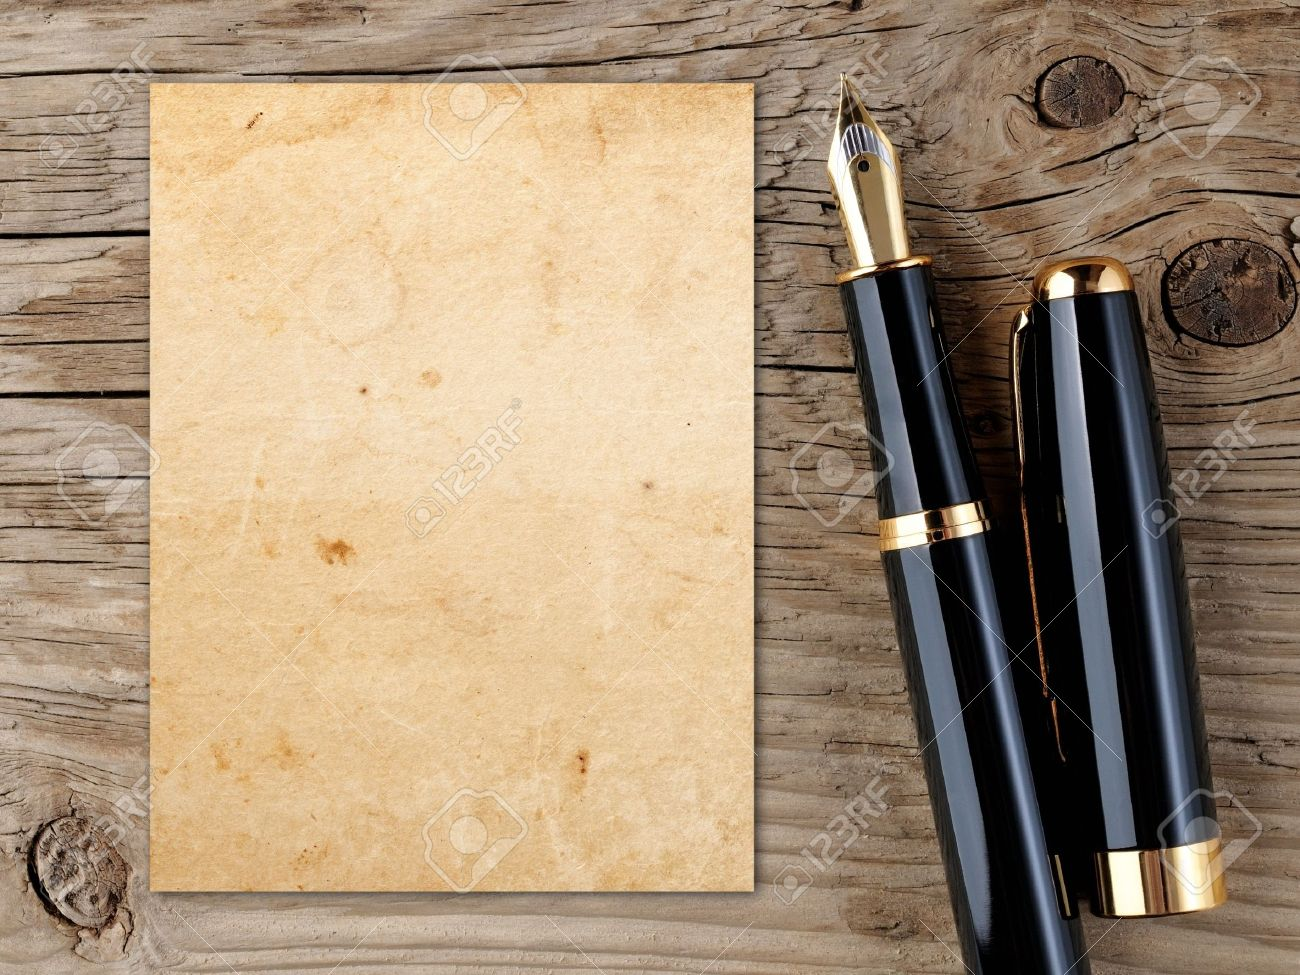 Fountain pen and vintage paper on old wooden background - 17442327